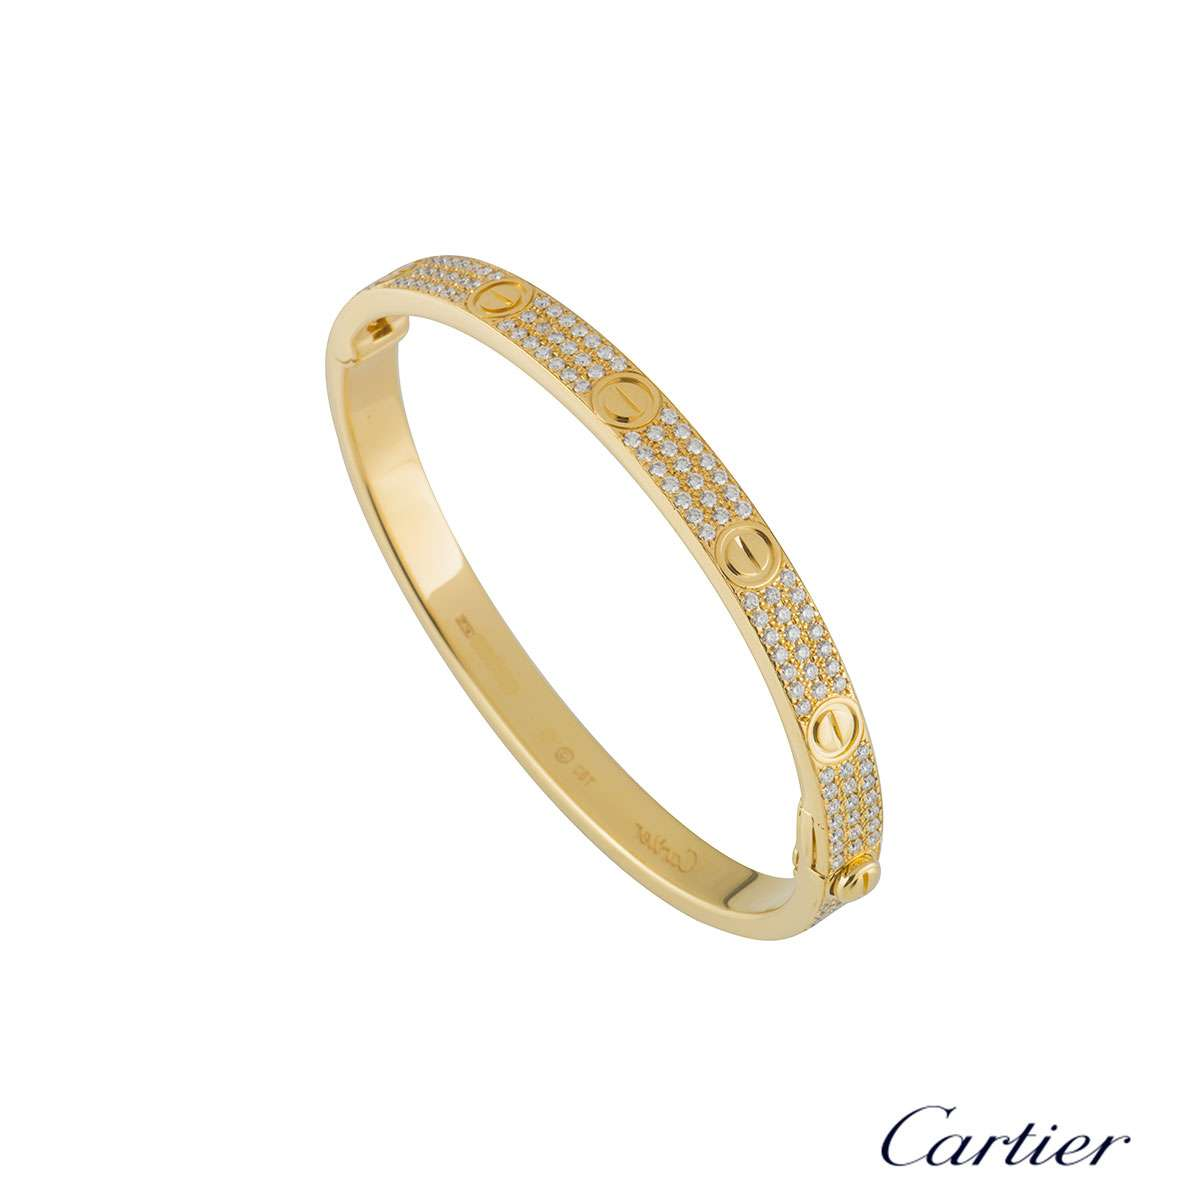 Cartier Yellow Gold Pave Diamond Love Bracelet Size 19 N6035019